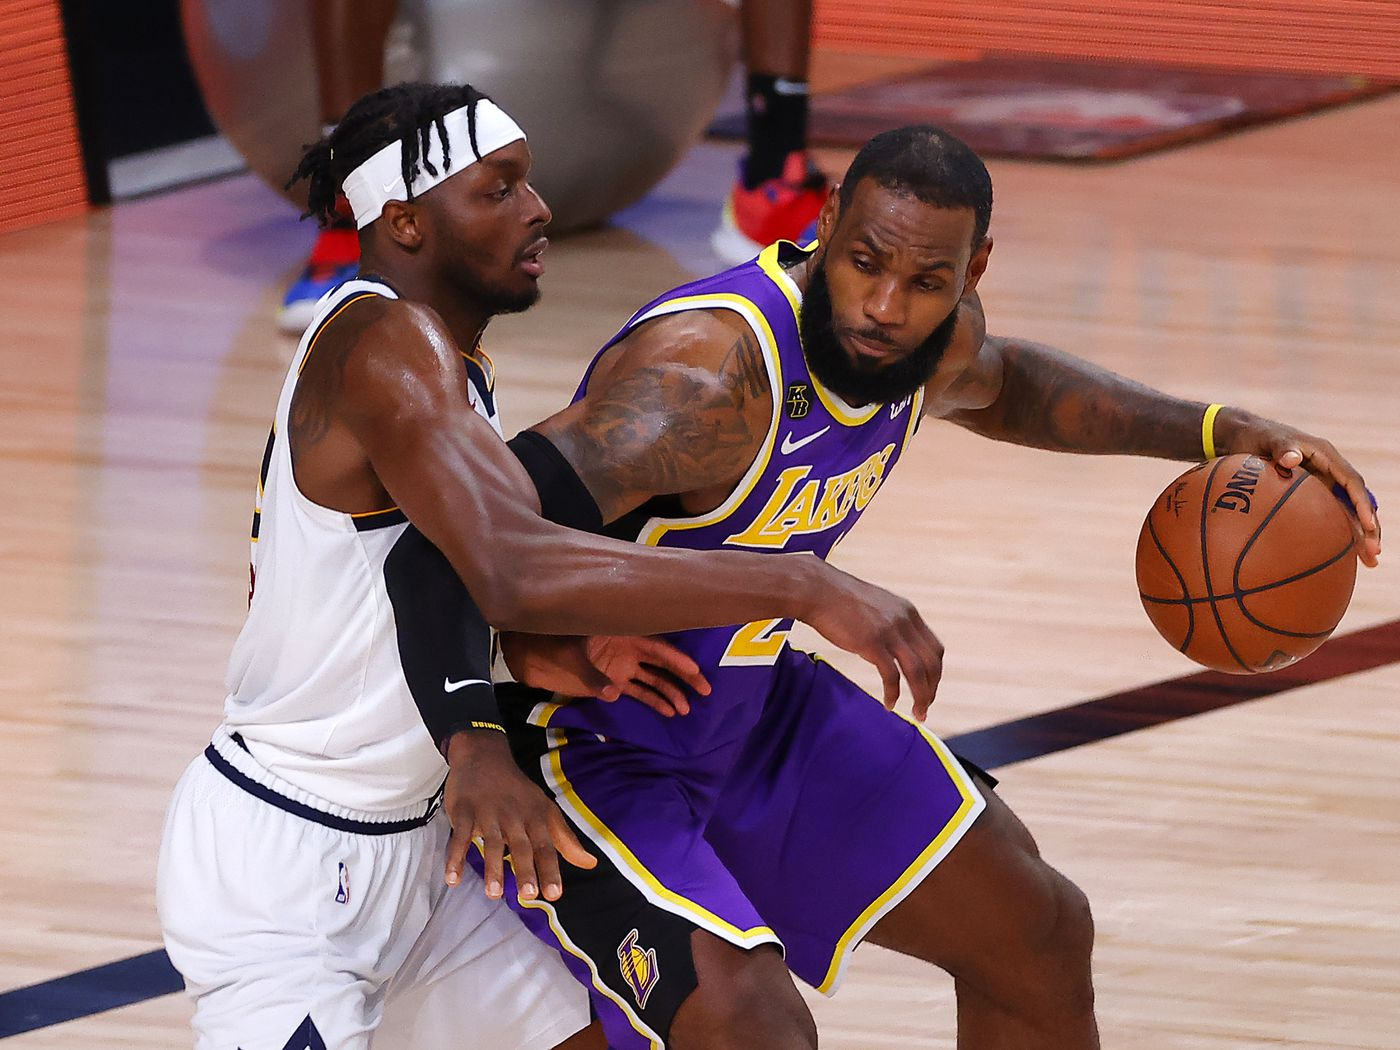 Fantasy Basketball Picks Top Draftkings Nba Dfs Lineup Strategy For Heat Vs Lakers Showdown On September 30 Draftkings Nation